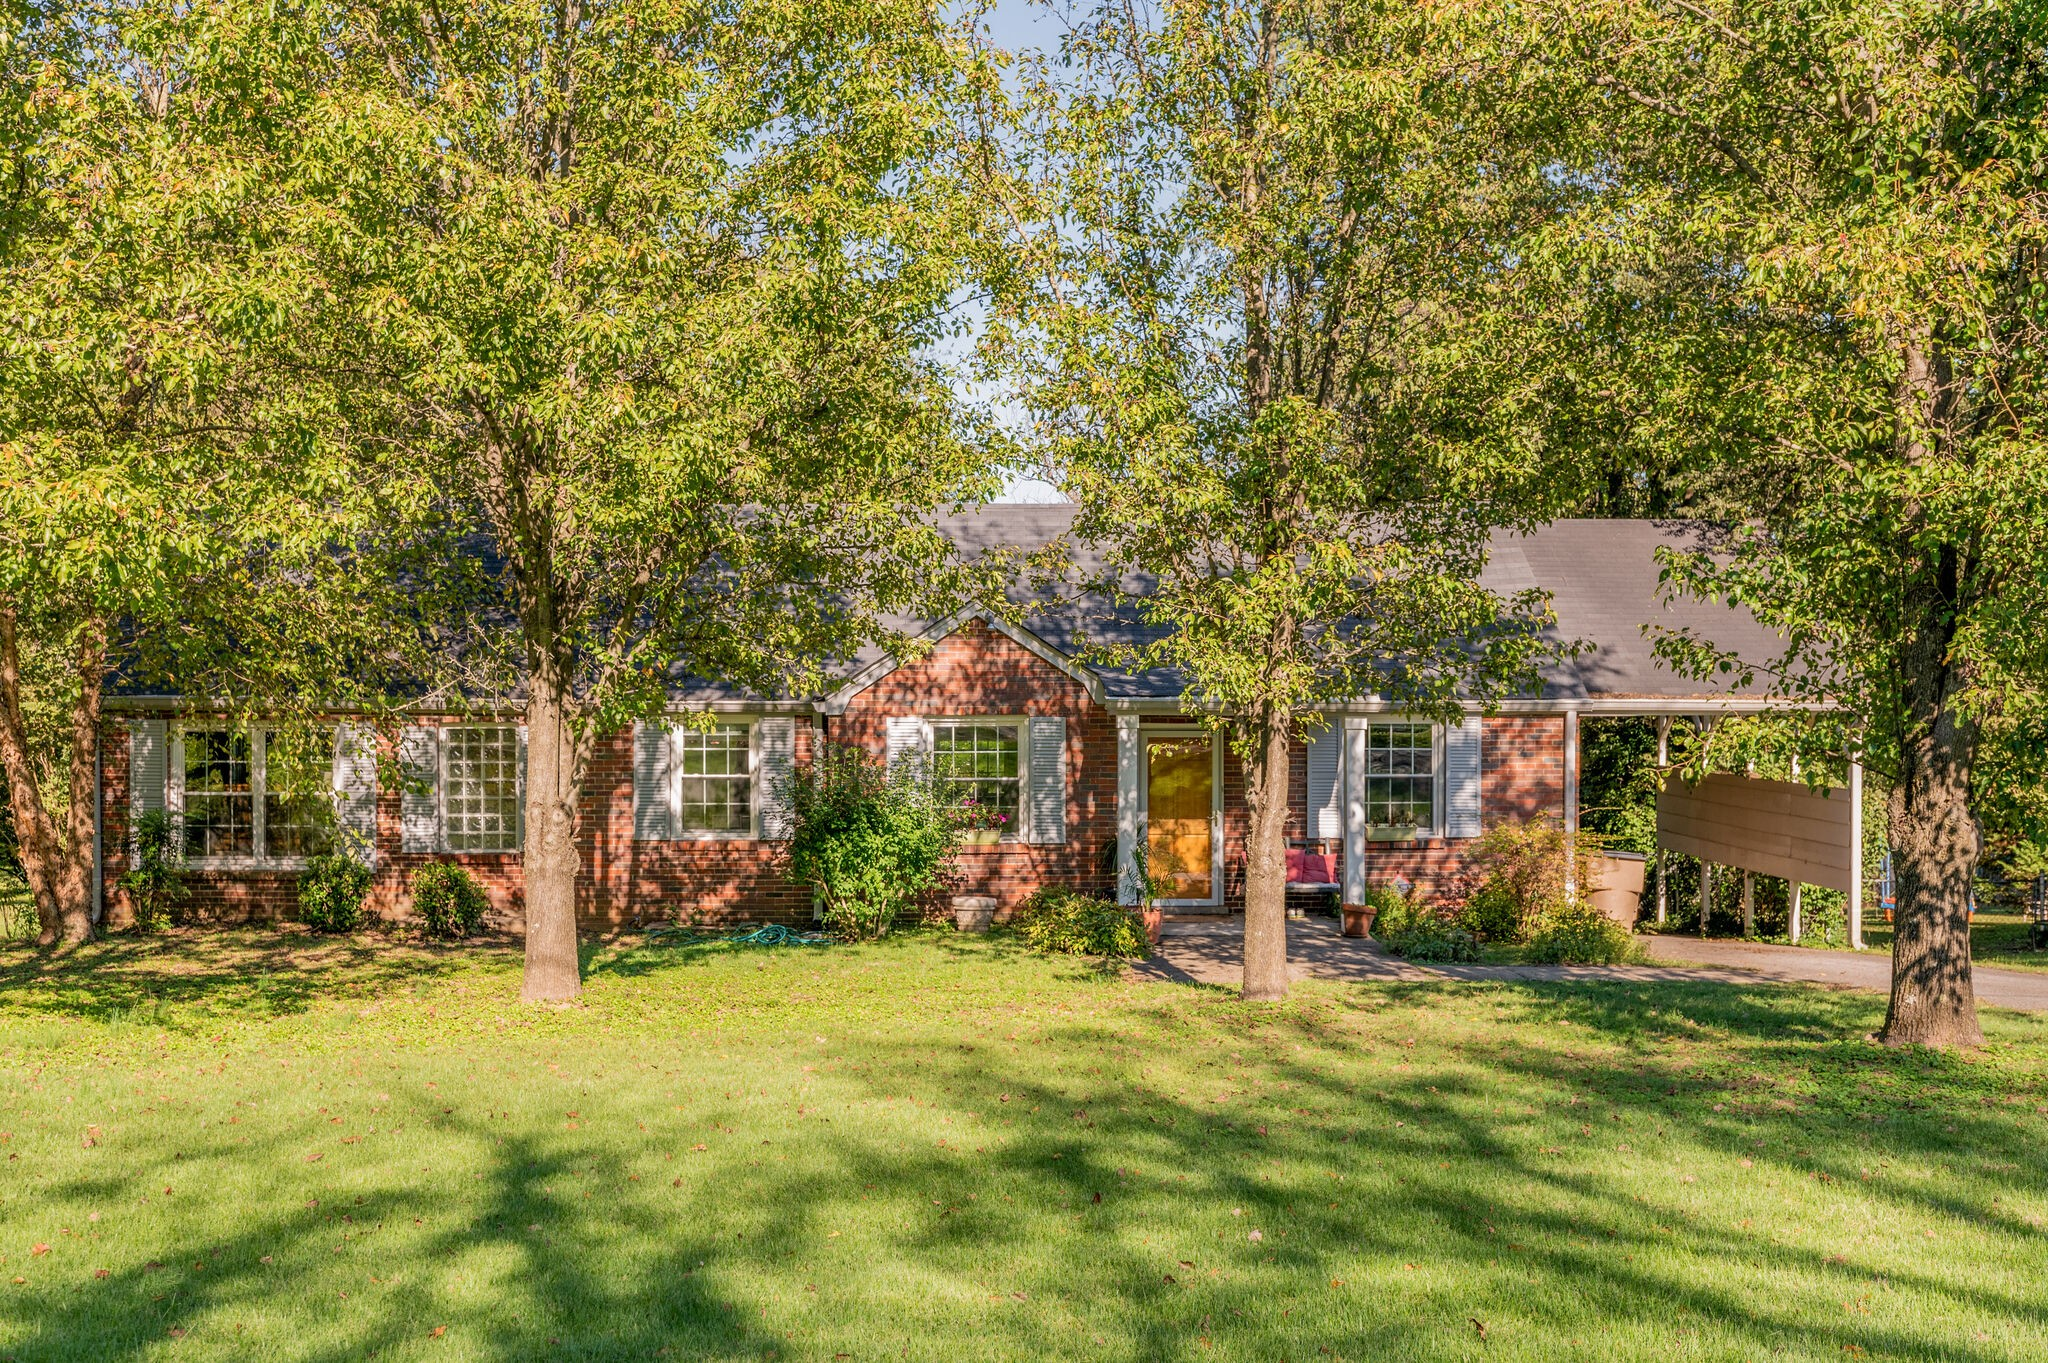 Awesome Inglewood location! Move in ready all brick cottage! Nice hardwoods & big family room w/ half bath & access to covered deck. Great backyard & carport! Big bedrooms! Home has had an addition so tax record square footage is not correct. Really must see in person!